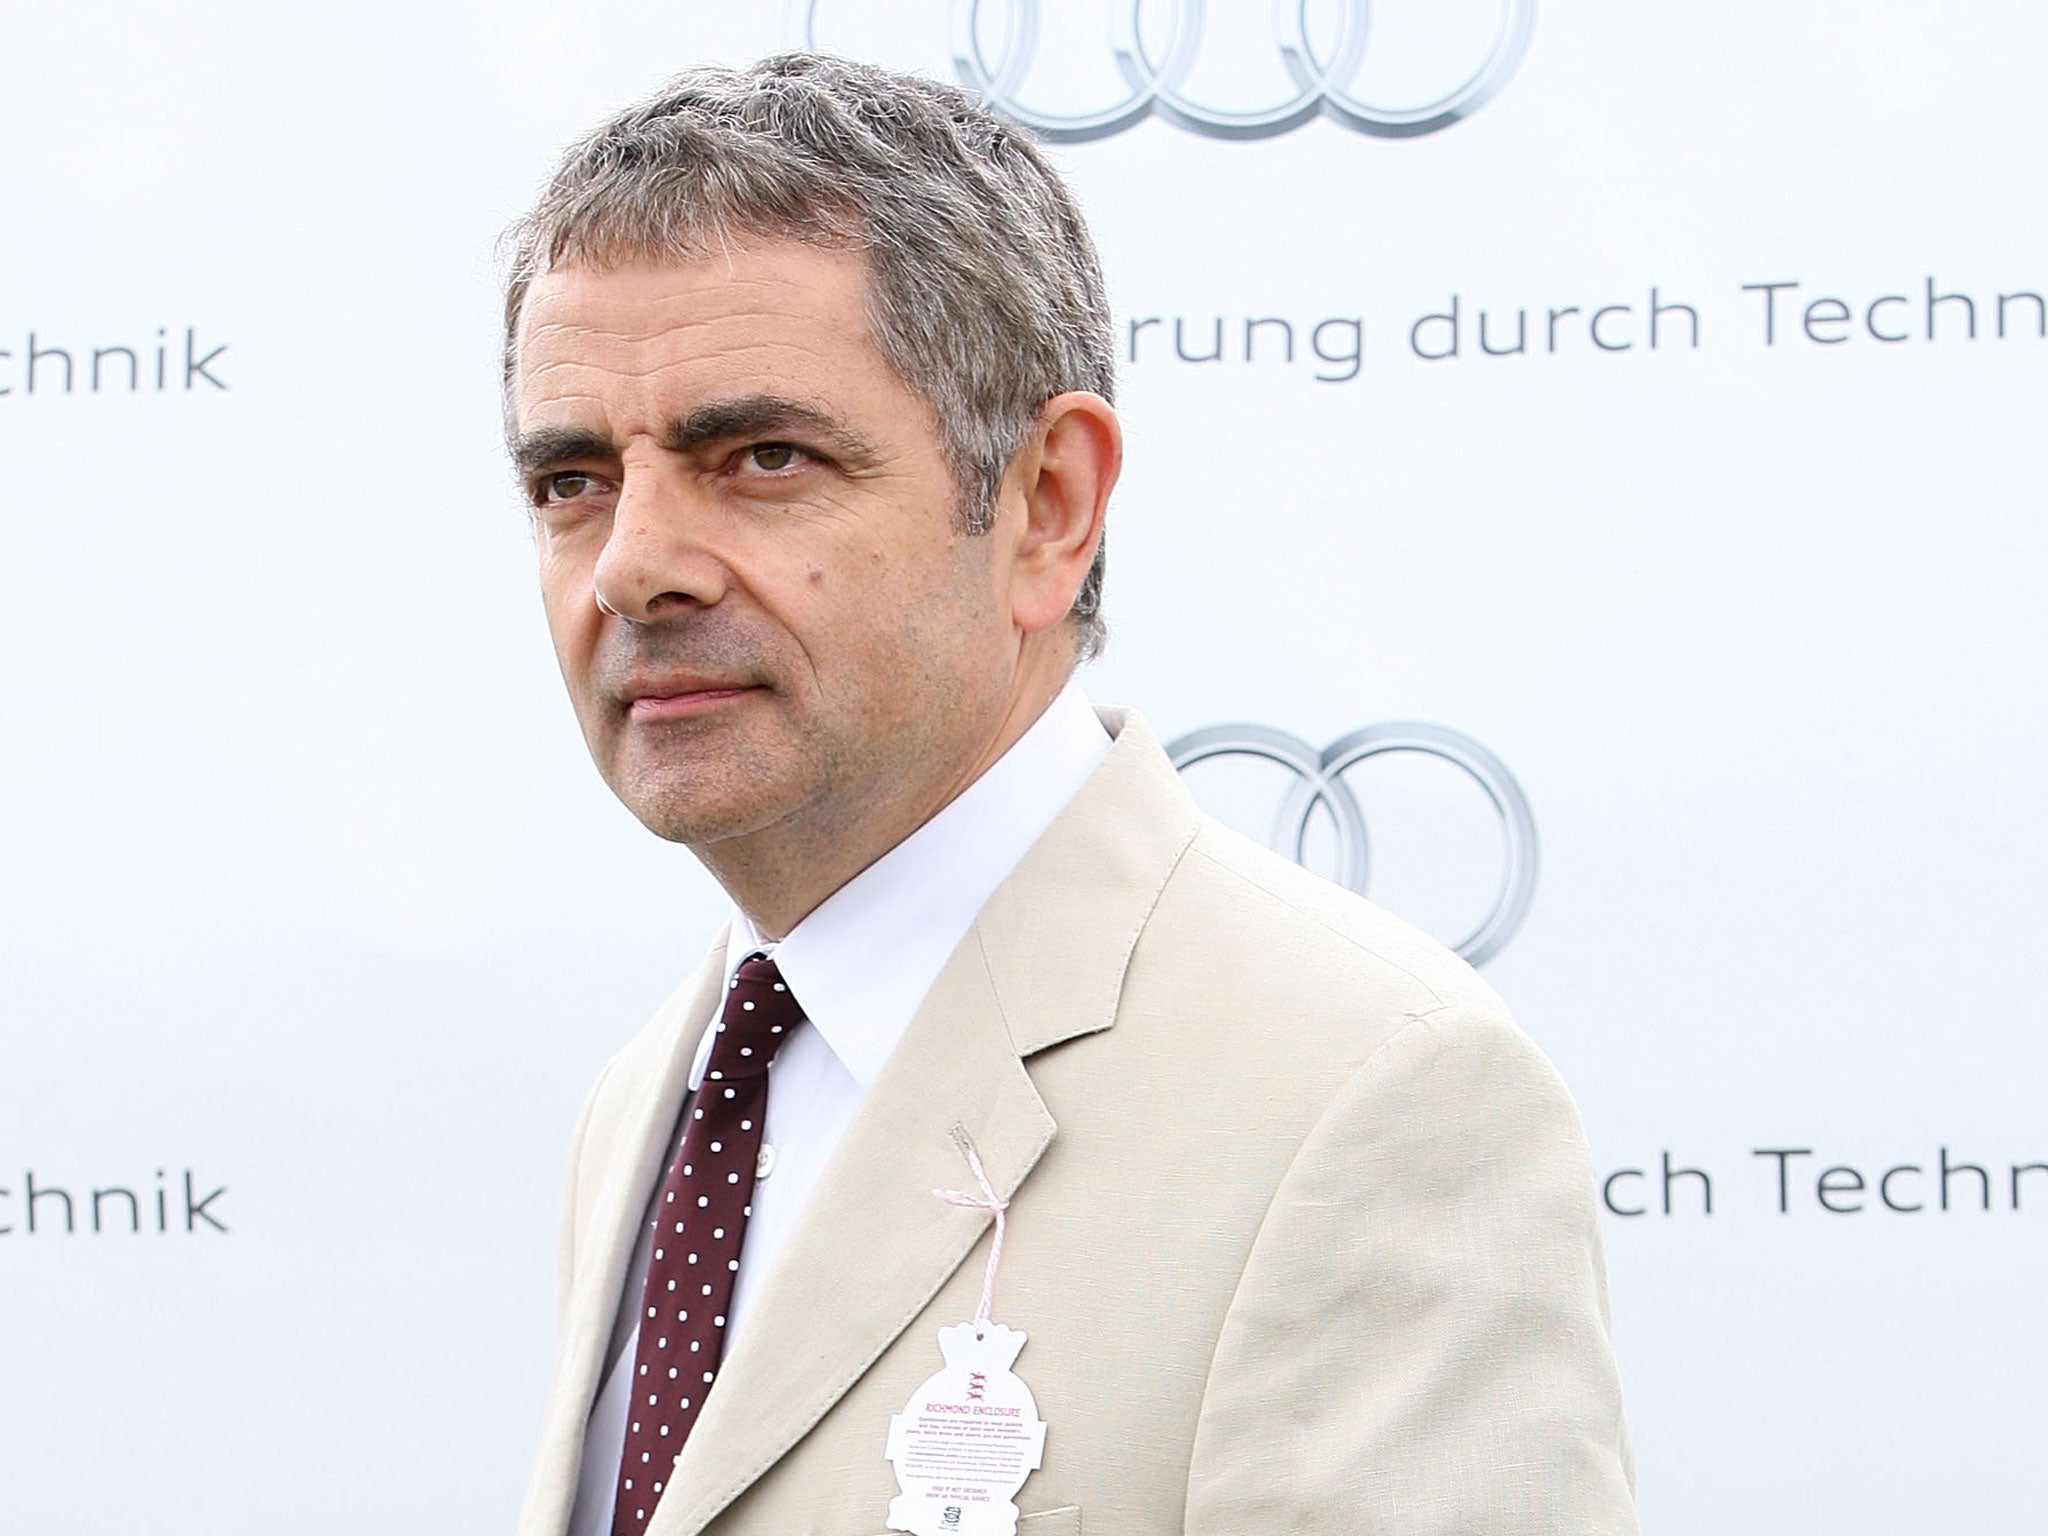 rowan atkinson elementary dating text Rowan atkinson has been made a cbe in the queen's birthday honours dating & relationships food highlight text to share via facebook and twitter.